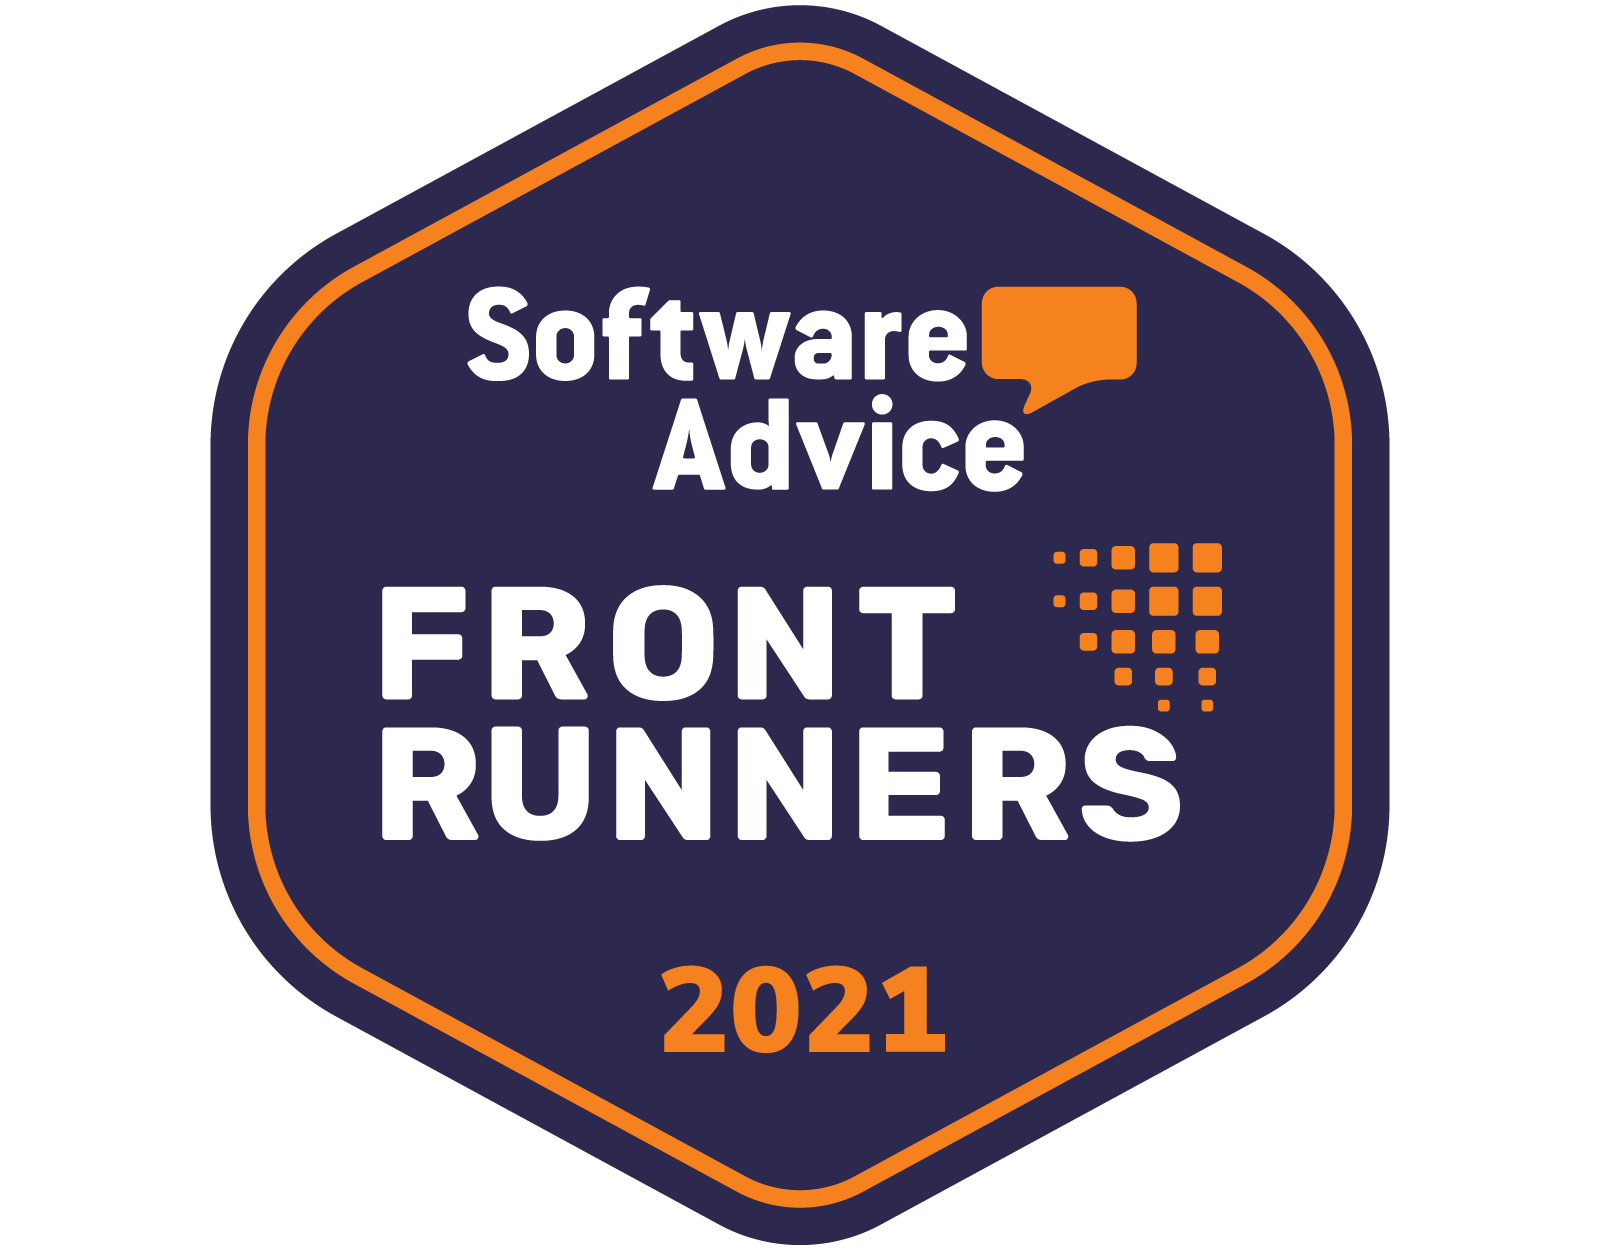 Software Advice Front Runners 2021 Badge.